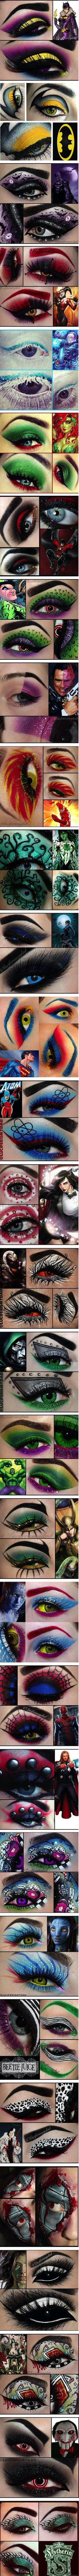 Eye Makeup - Eye Makeup - eye makeup-in superhero/villain style. - Health Beauty, Makeup, Eyes - Ten Different Ways of Eye Makeup Movie Makeup, Fx Makeup, Beauty Makeup, Hair Makeup, Eye Make, How To Make, Fantasy Make Up, Fantasy Hair, Character Makeup